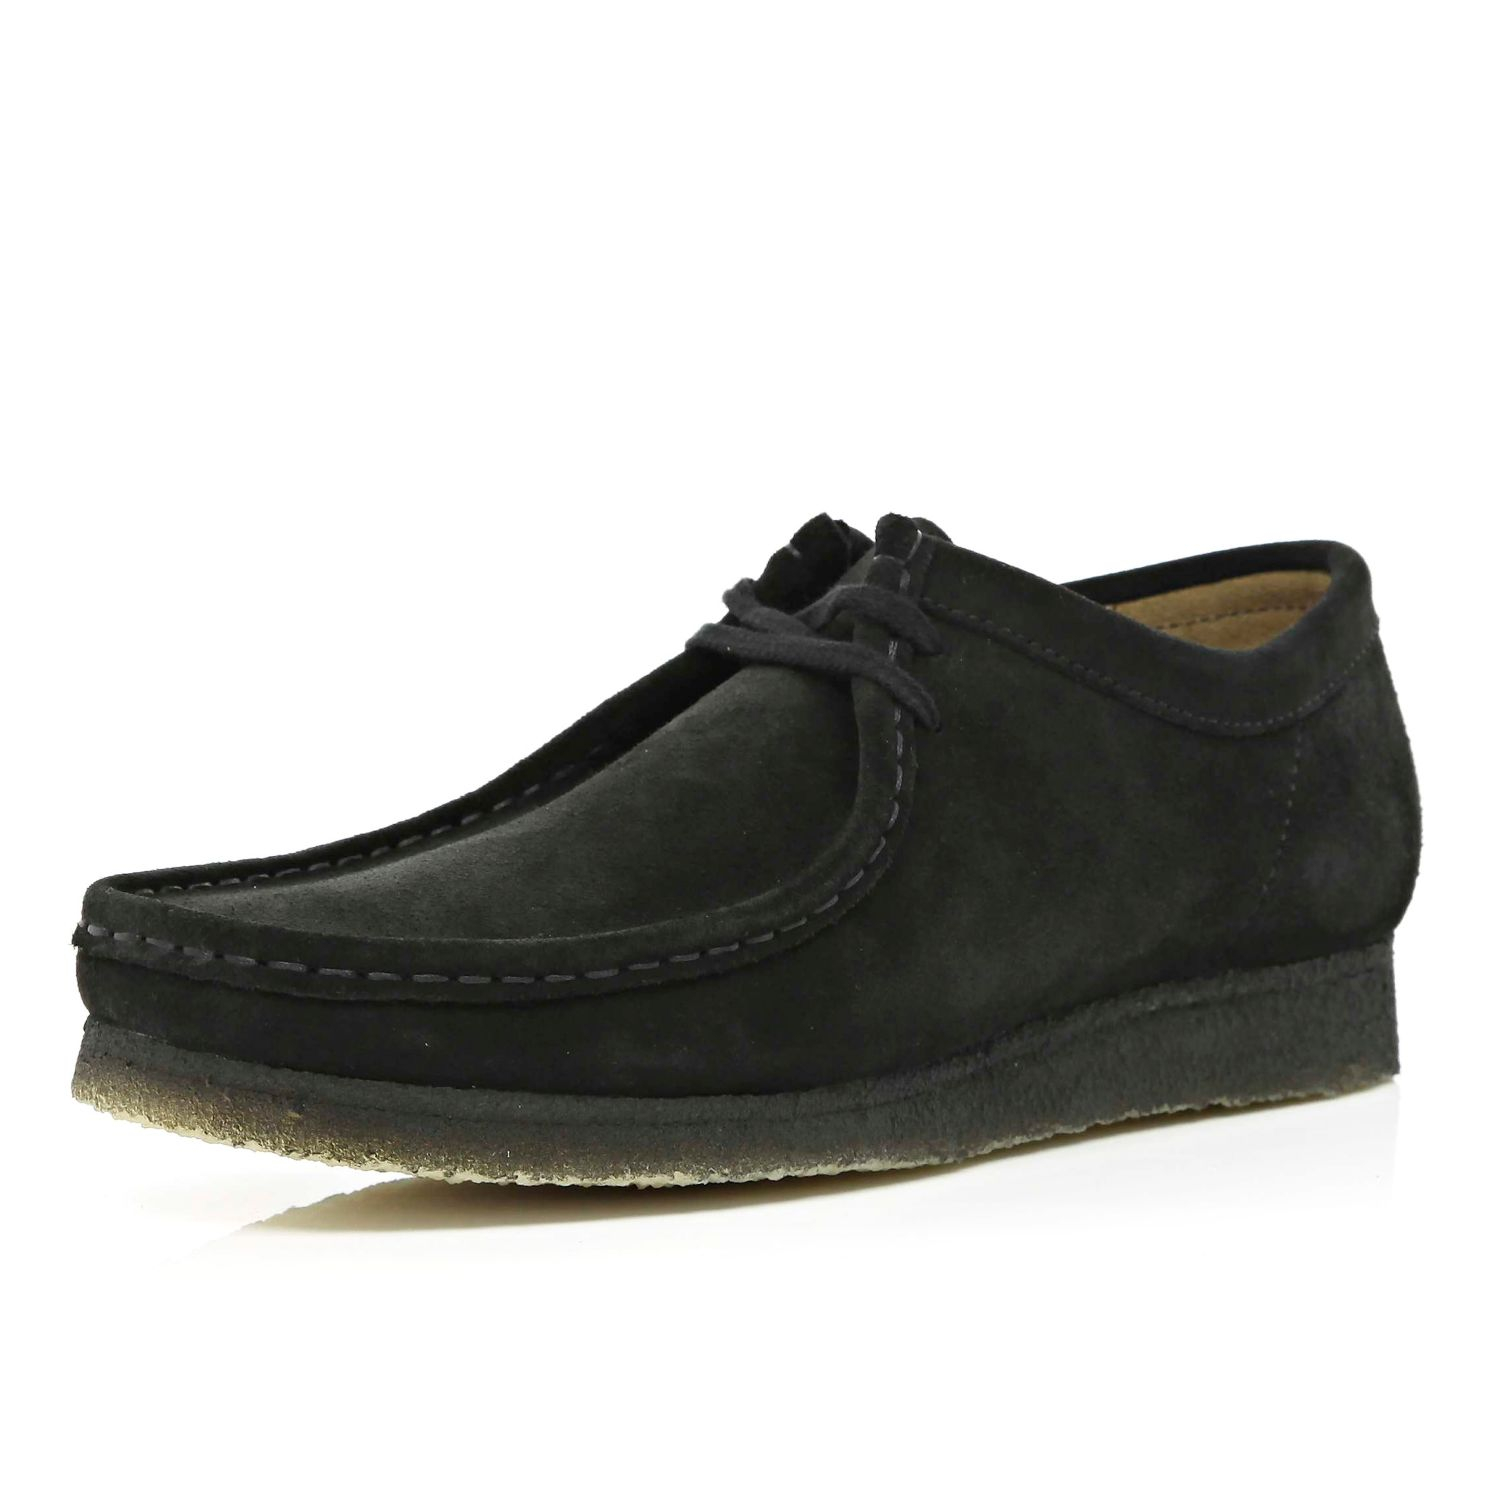 Cole Haan – Save An Extra 40% Off Mens and Womens Sale Shoes (Men's Black Shoes From $ + Free Shipping)!